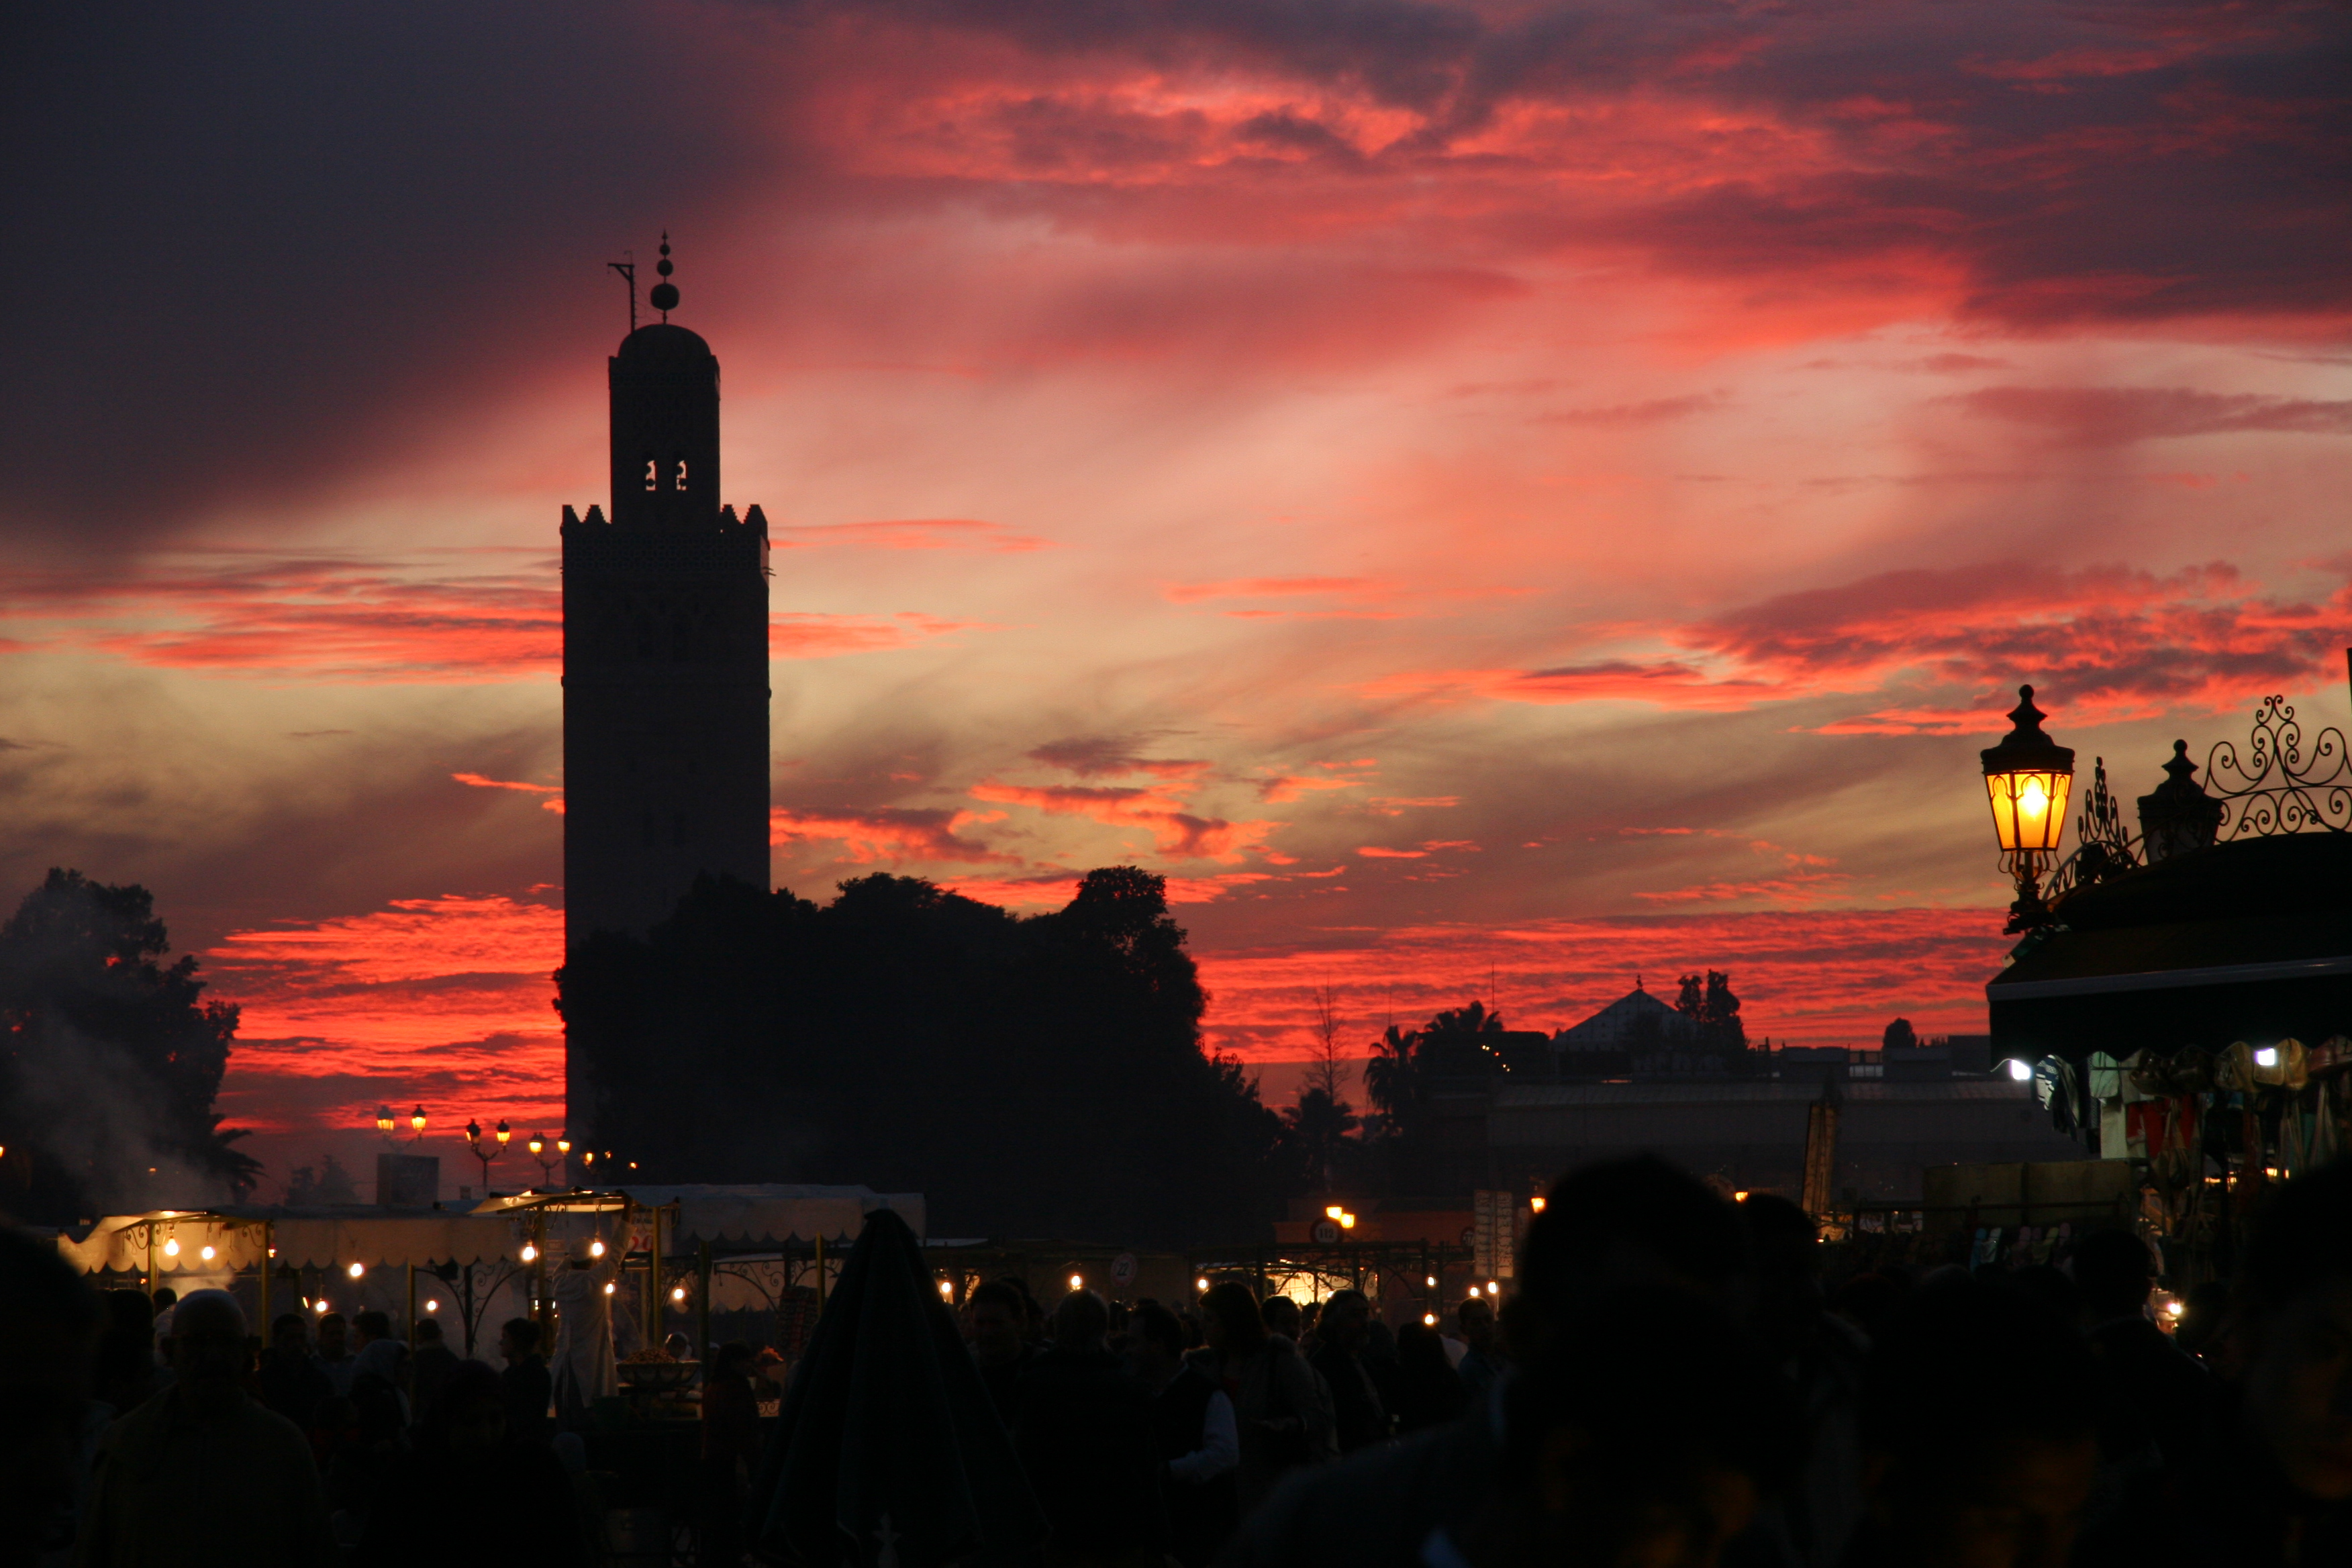 sunset in marrakech author chaze bernard